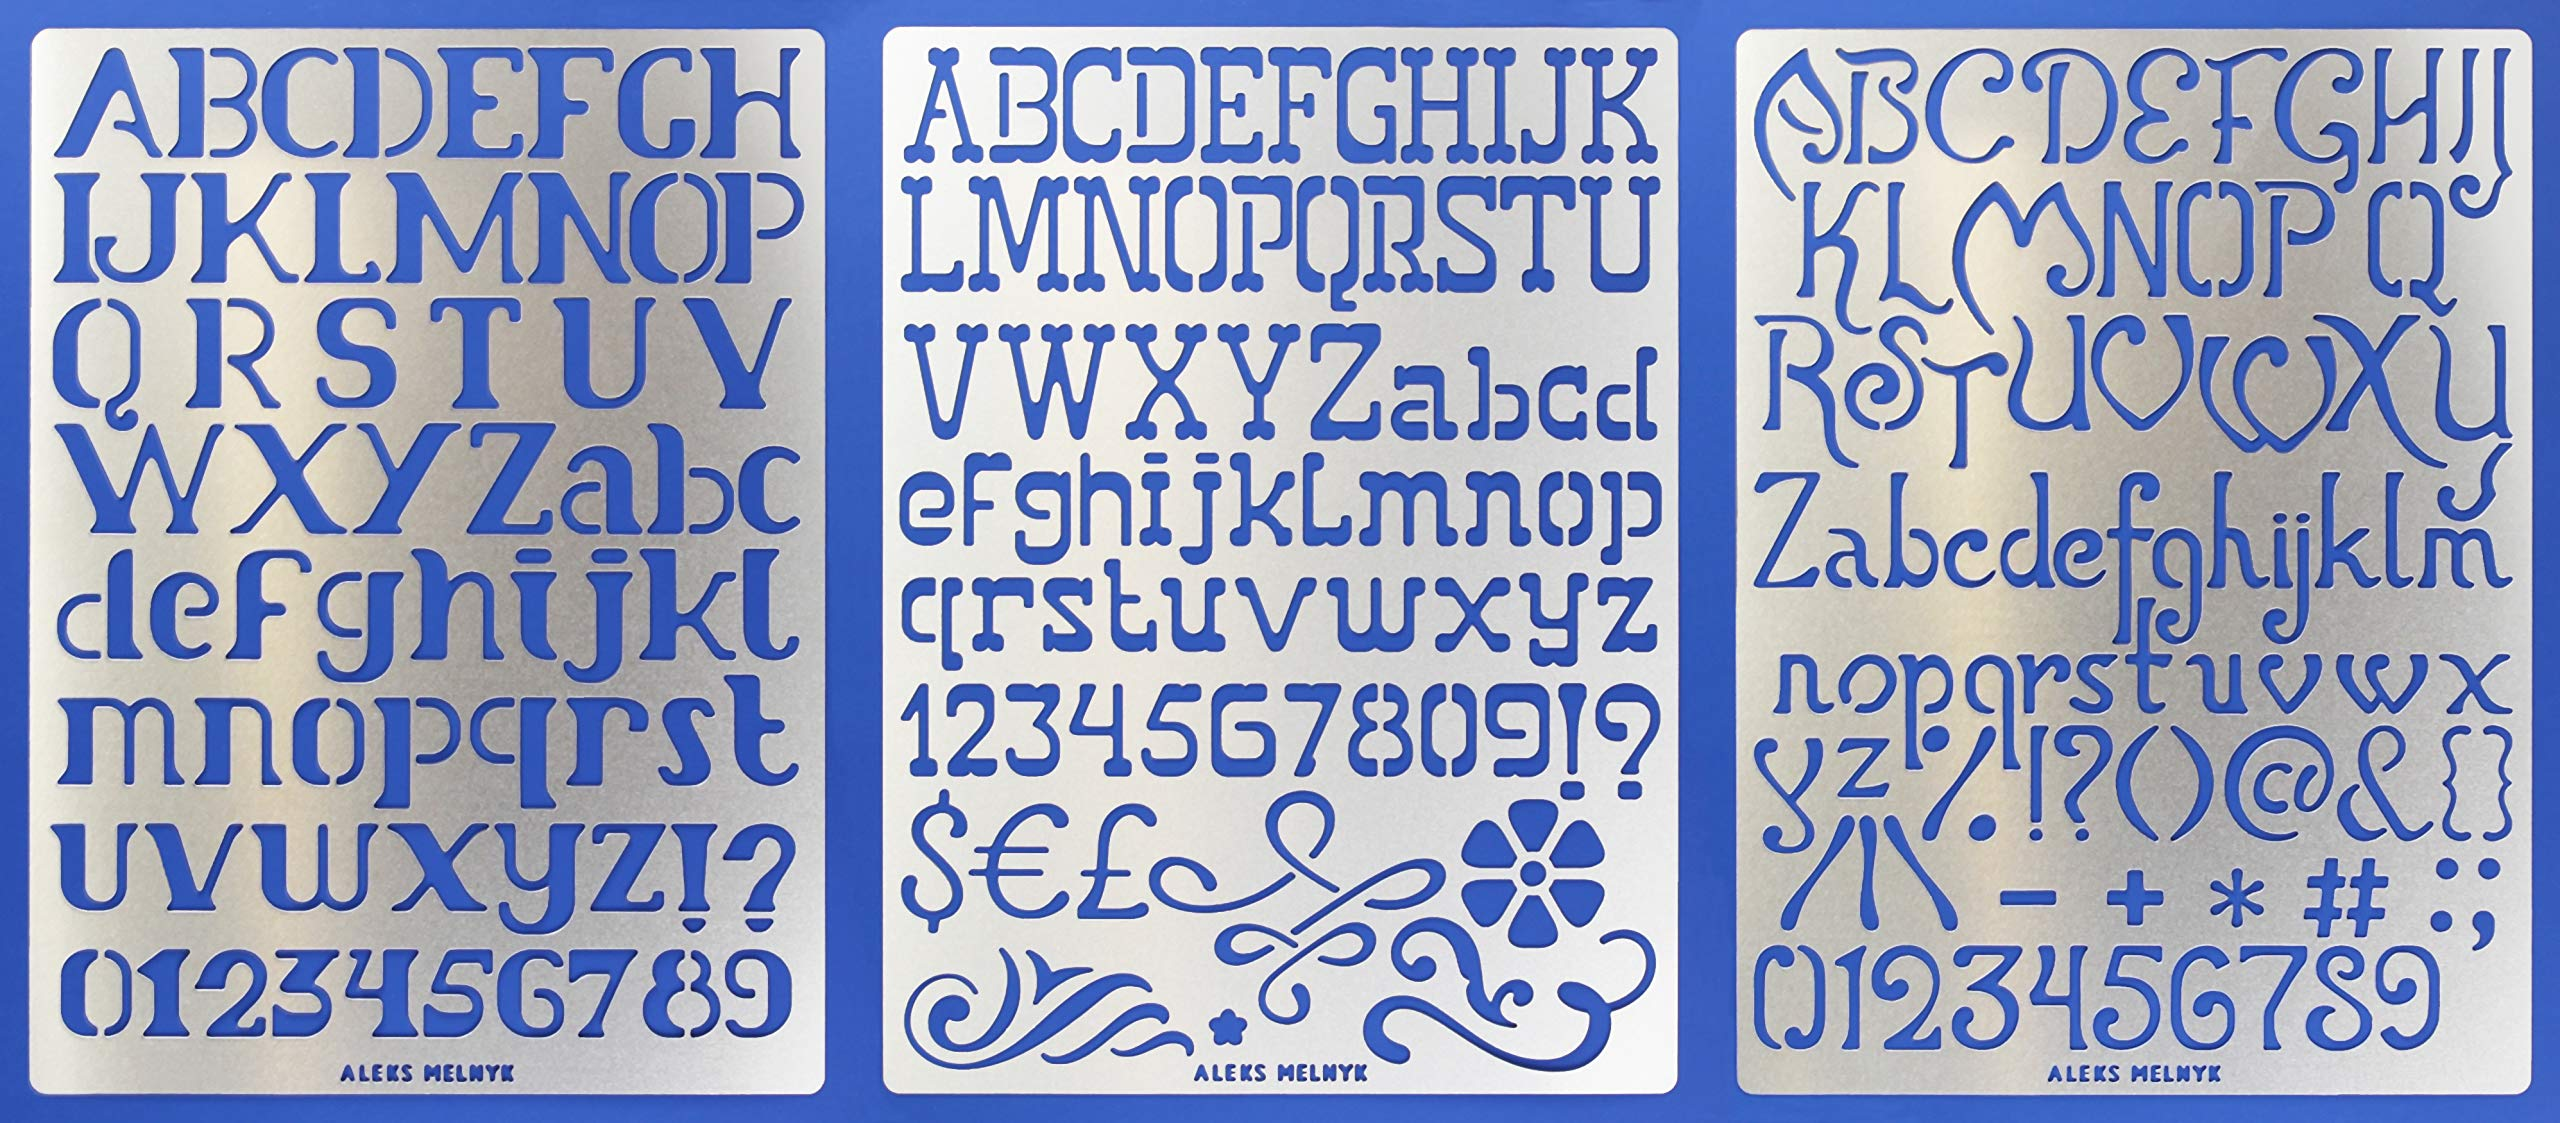 Aleks Melnyk #45 Metal Journal Stencils/Alphabet Letter Number, ABC - 1 inch/Stainless Steel Stencils Kit 3 PCS/Templates Tool for Wood Burning, Pyrography and Engraving/Scrapbooking/Crafting/DIY by Aleks Melnyk